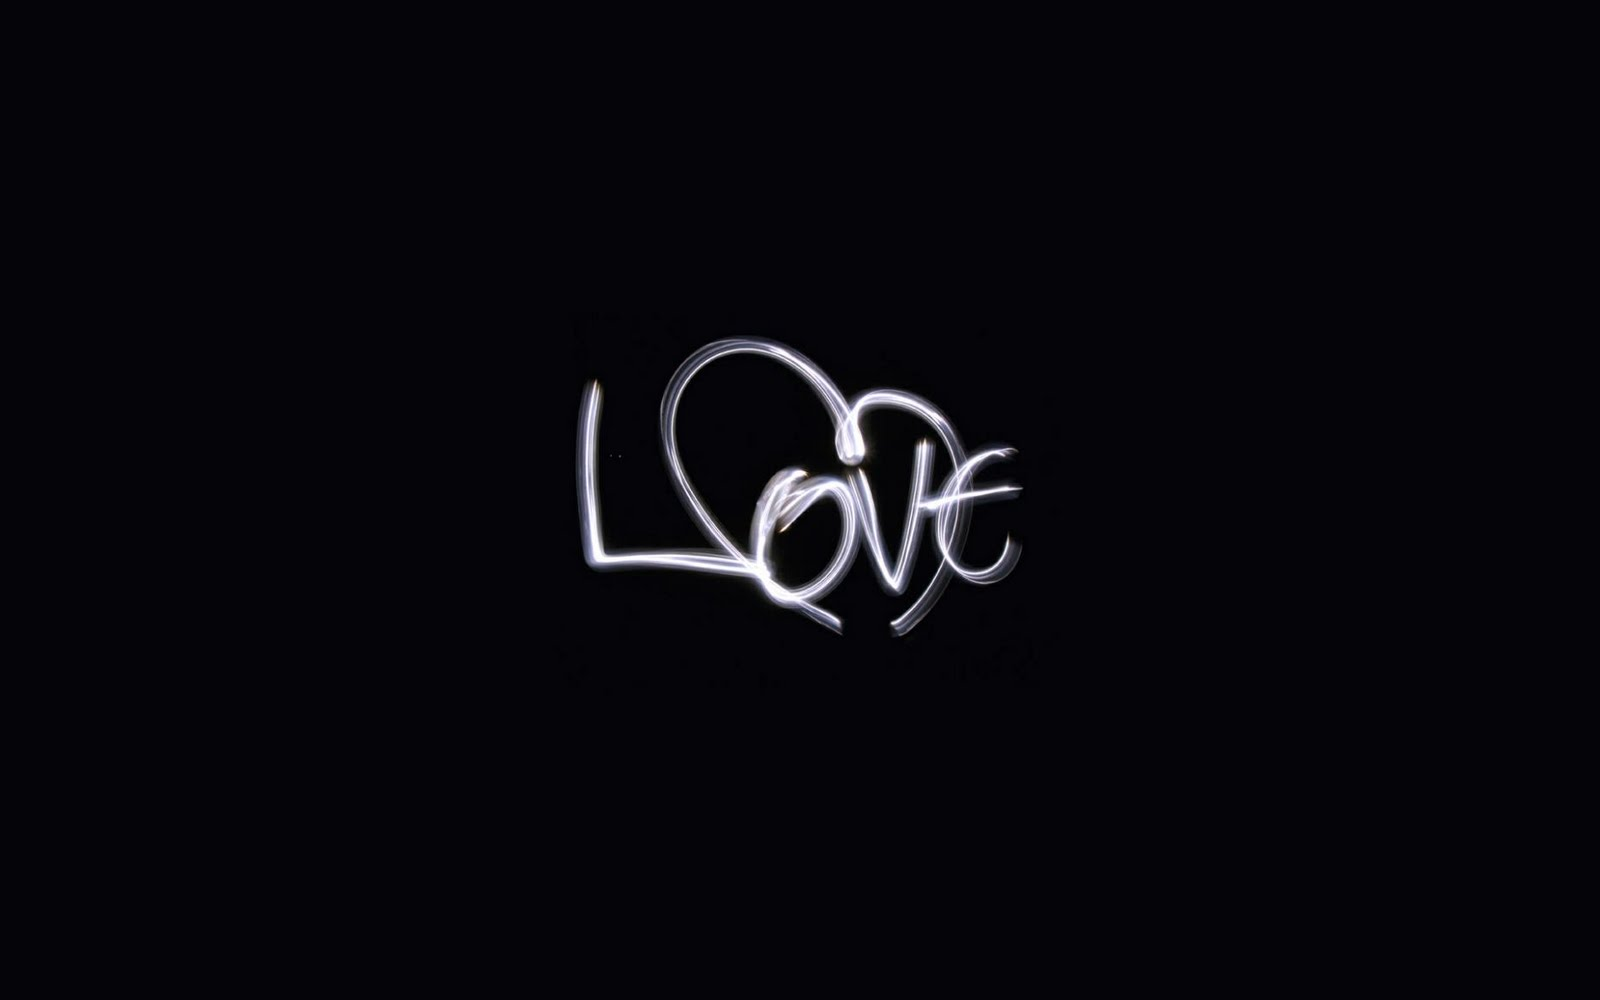 Love Wallpaper Background Hd : TOP HD WALLPAPERS: LOVE HD WALLPAPER